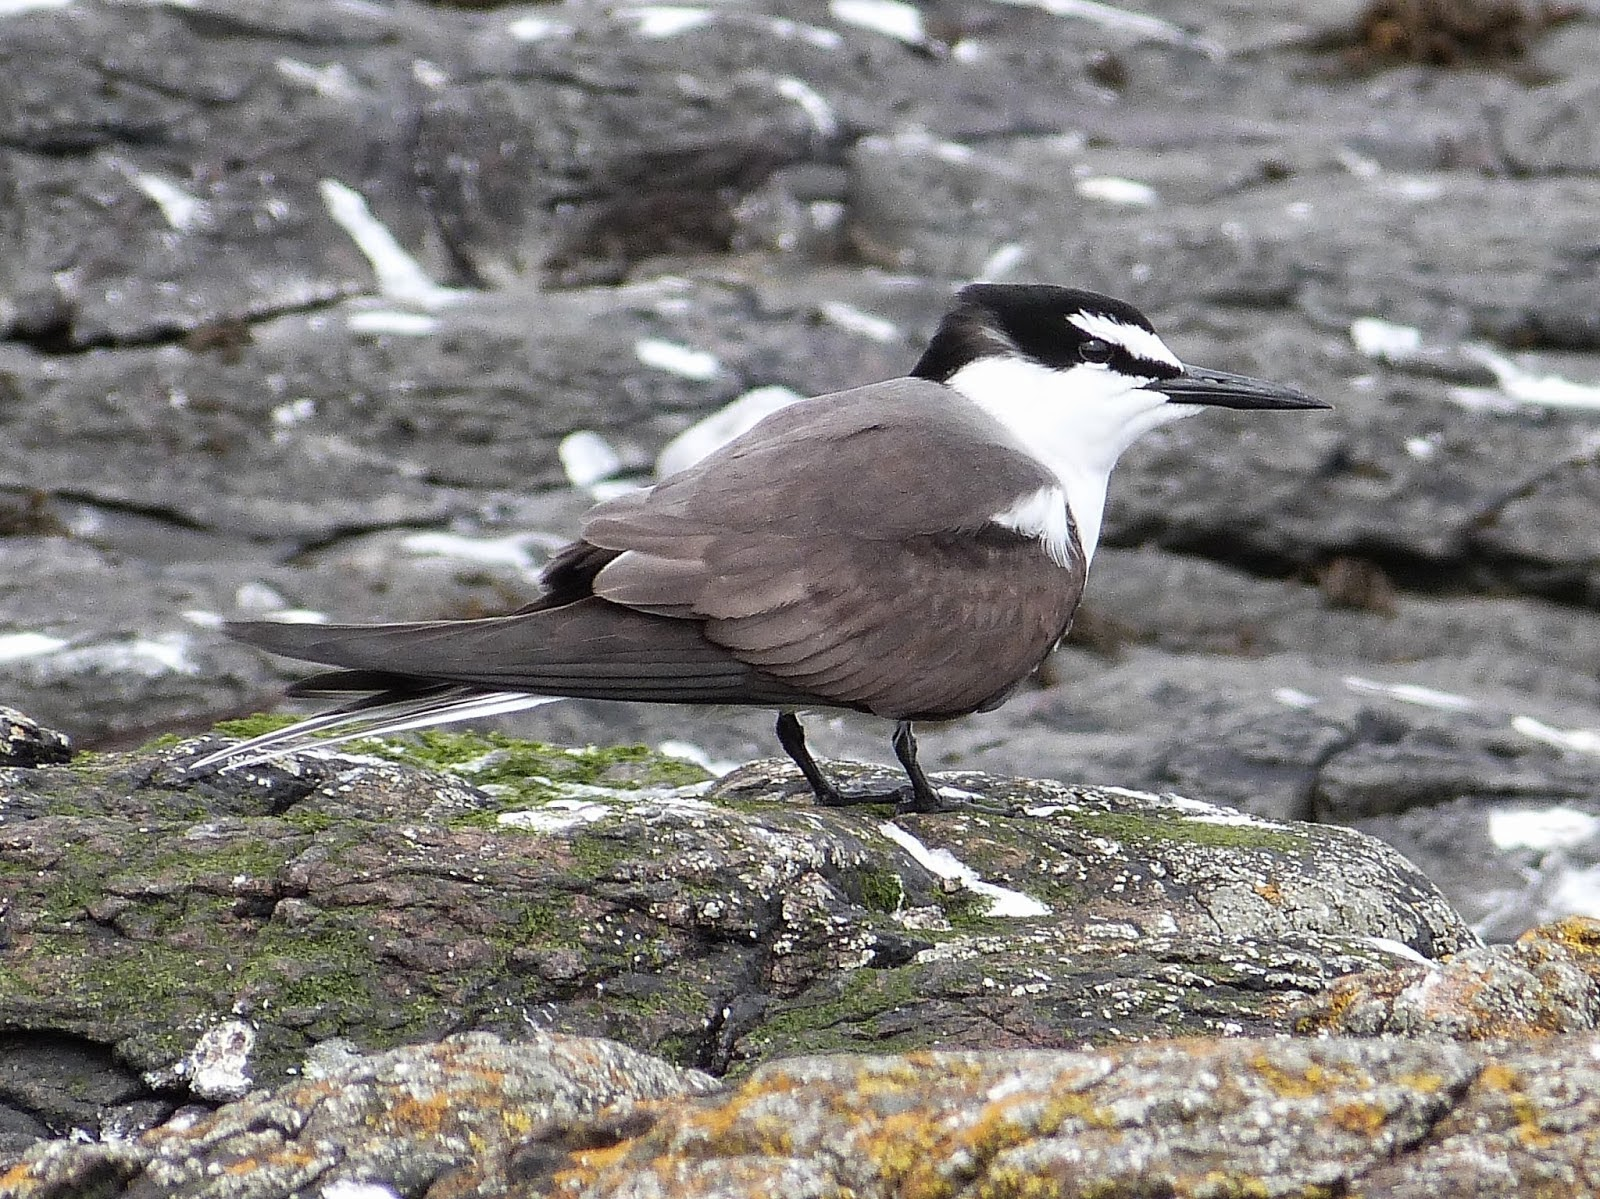 Bridled tern - Farne Islands, Northumberland - David Kinchin-Smith